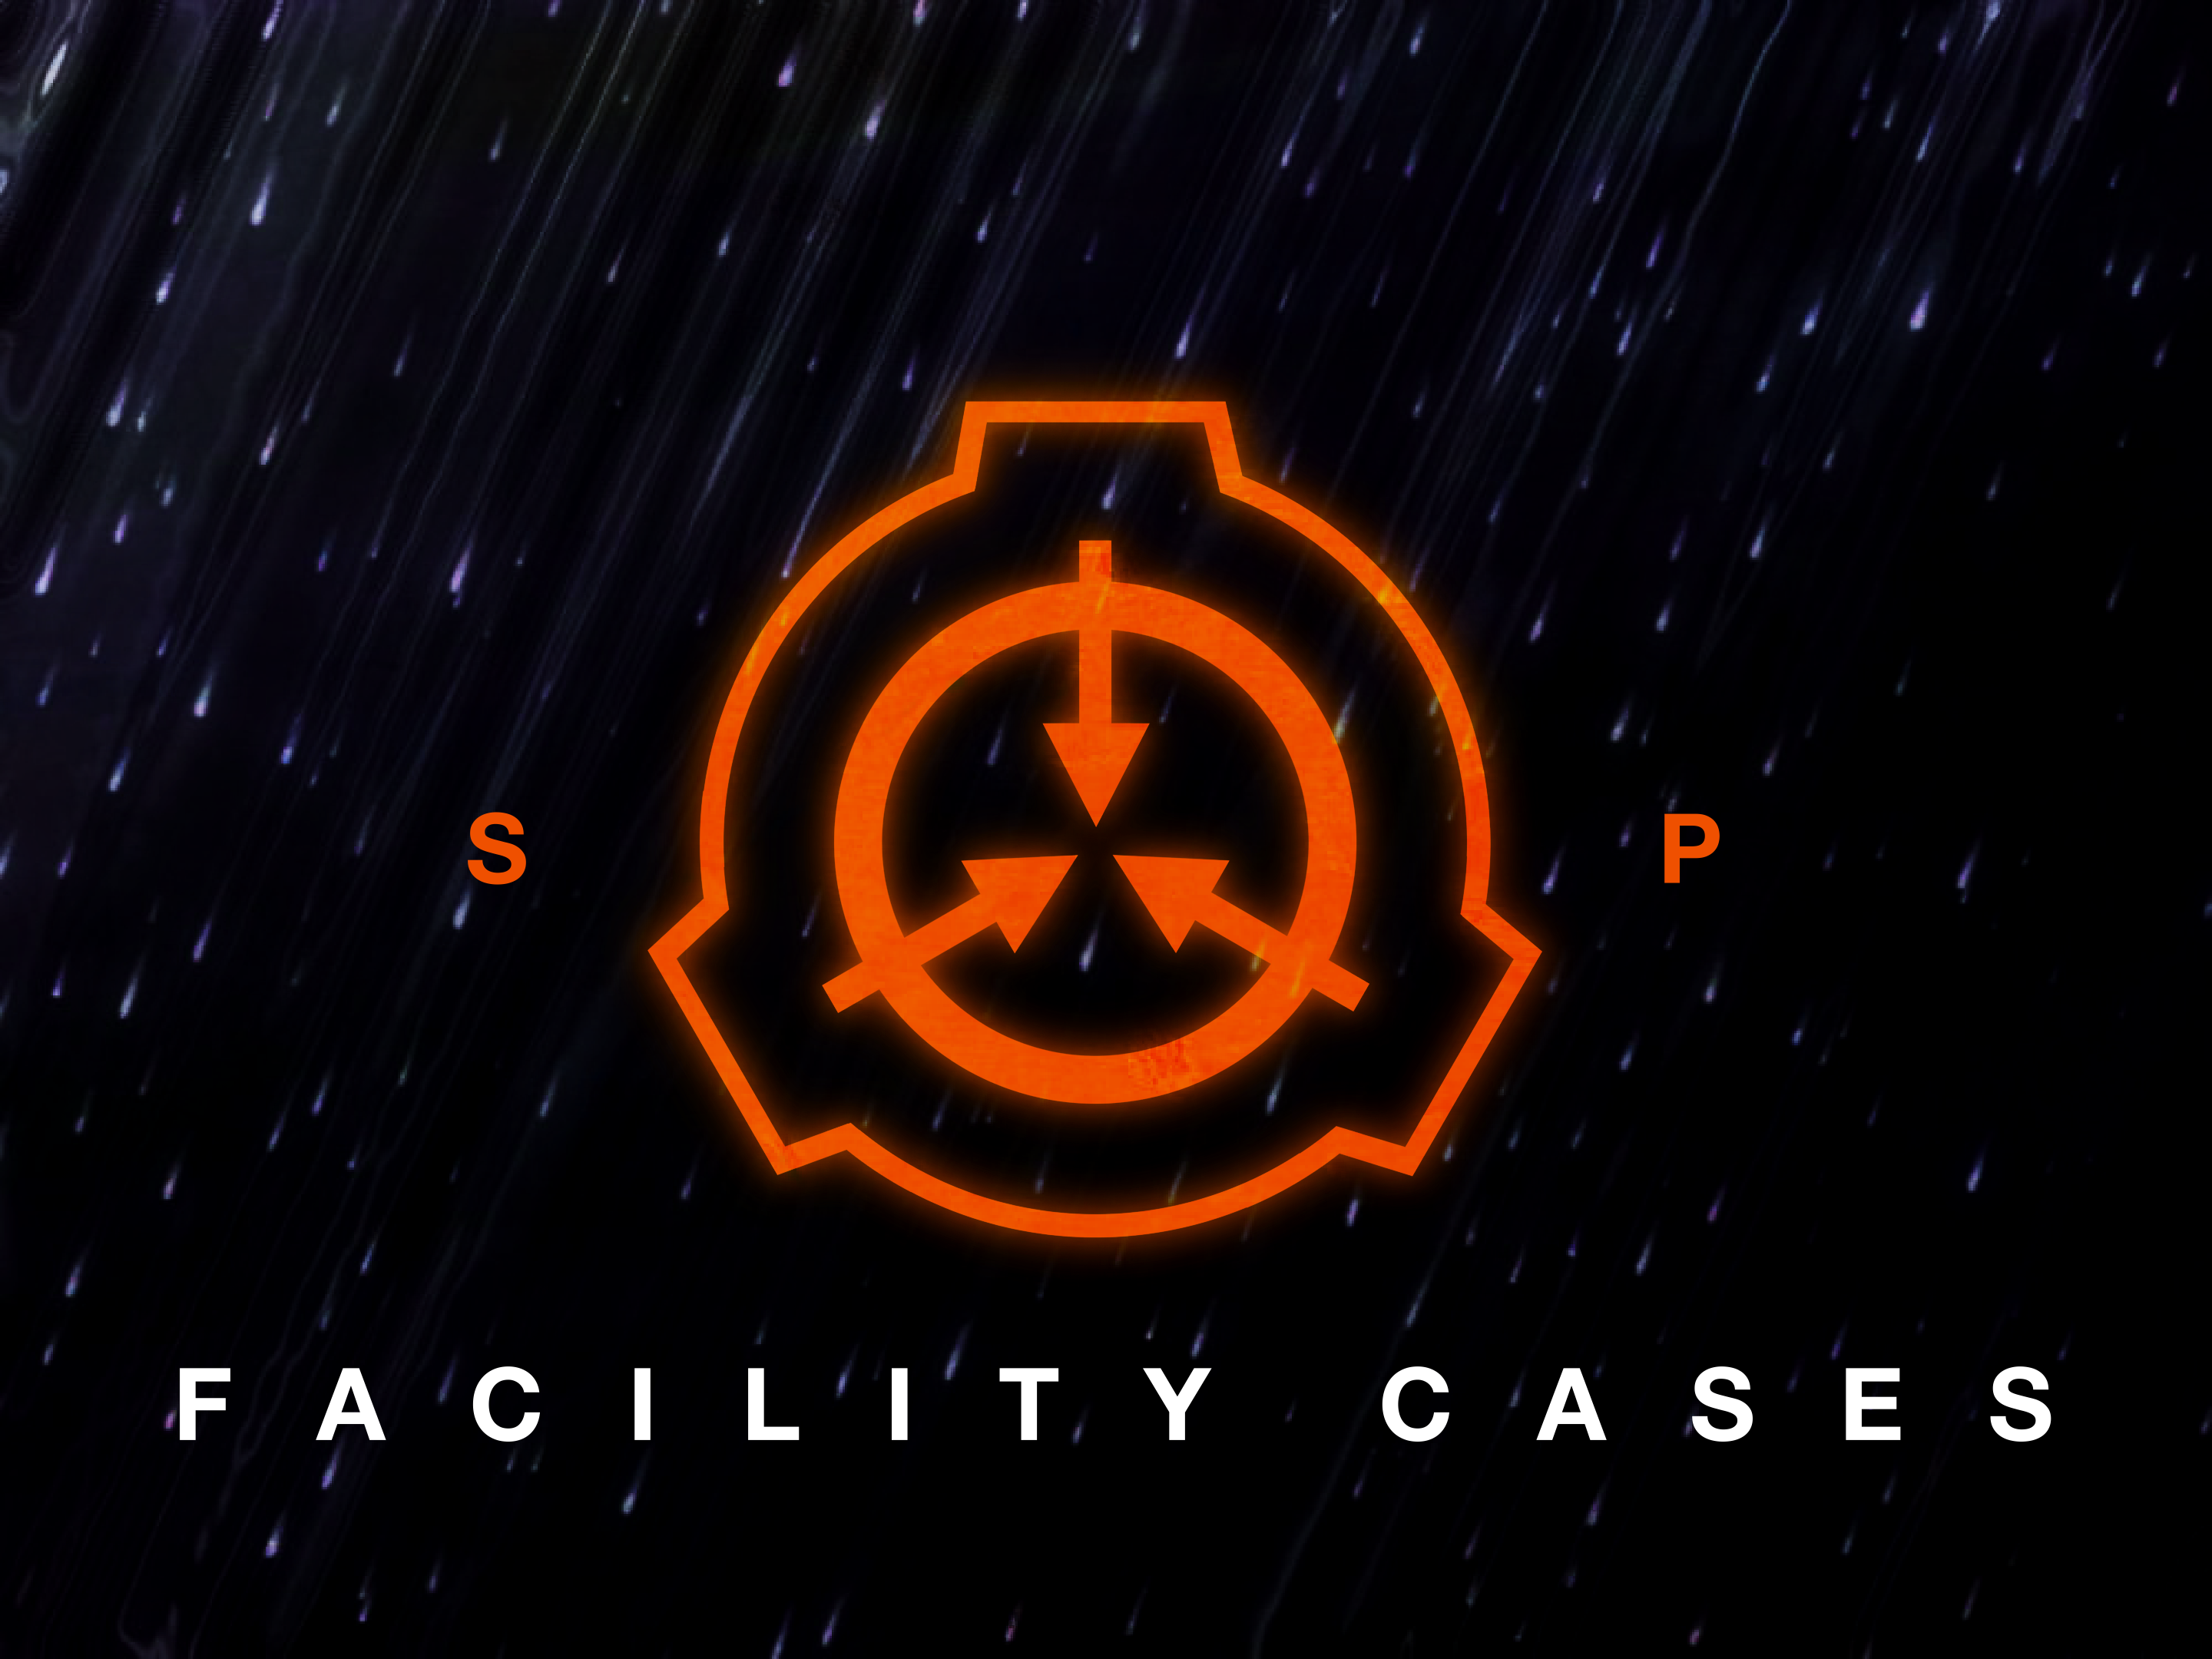 DevLog #3 news - SCP - Facility Cases - Indie DB